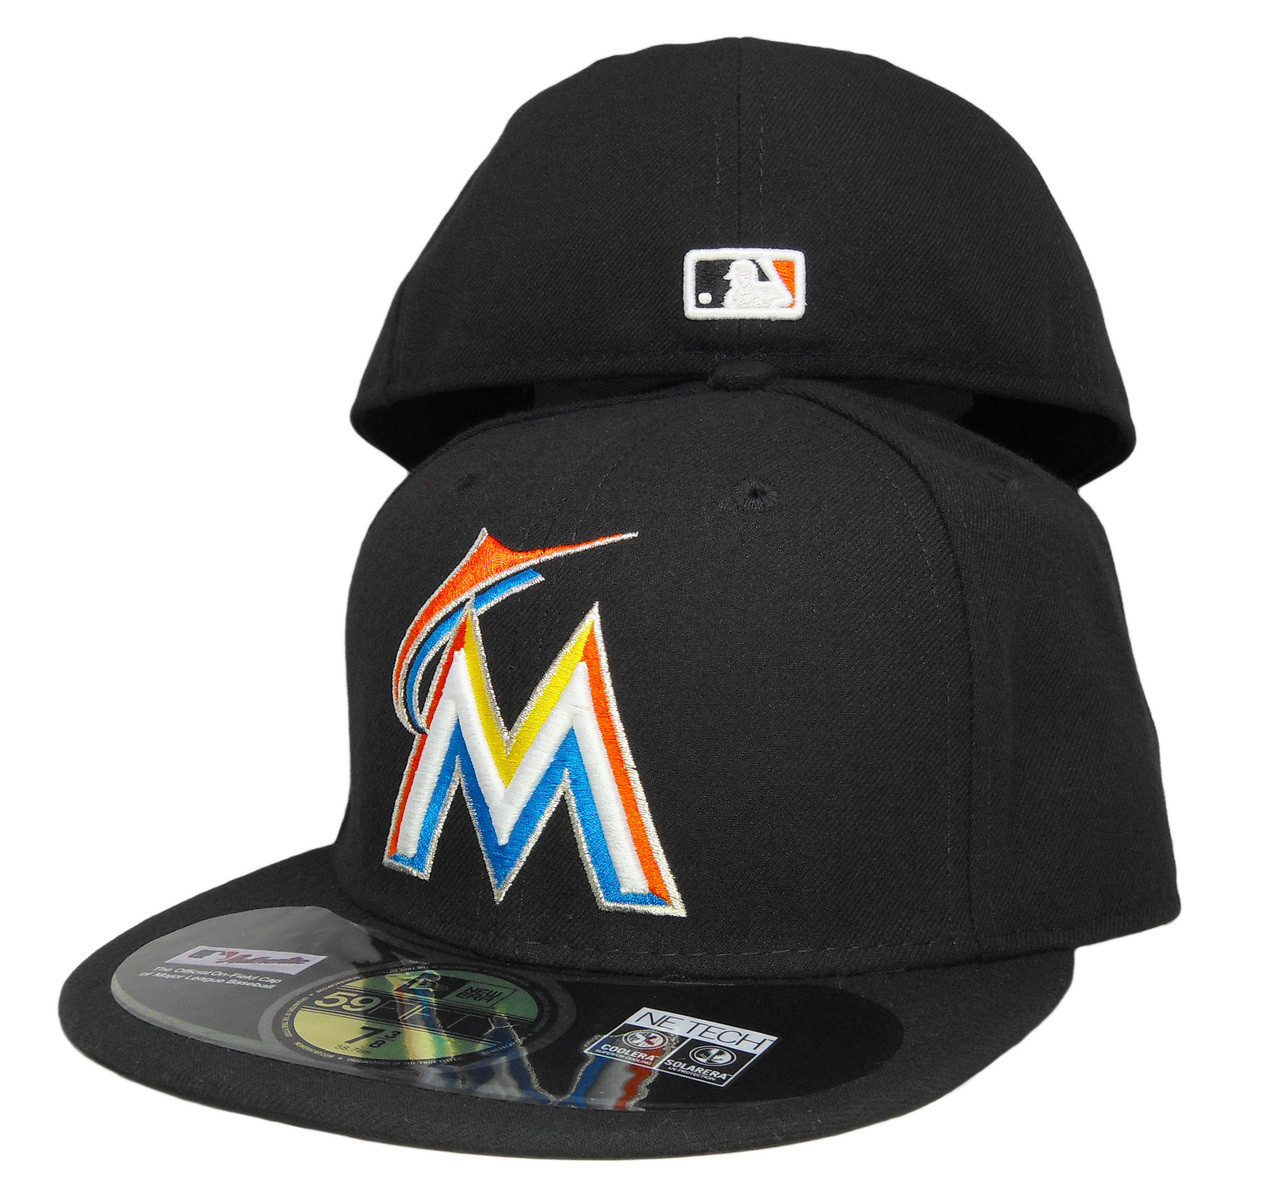 25386275326 ... store miami marlins new era home onfield fitted hat black orange blue  yellow 89455 a40f7